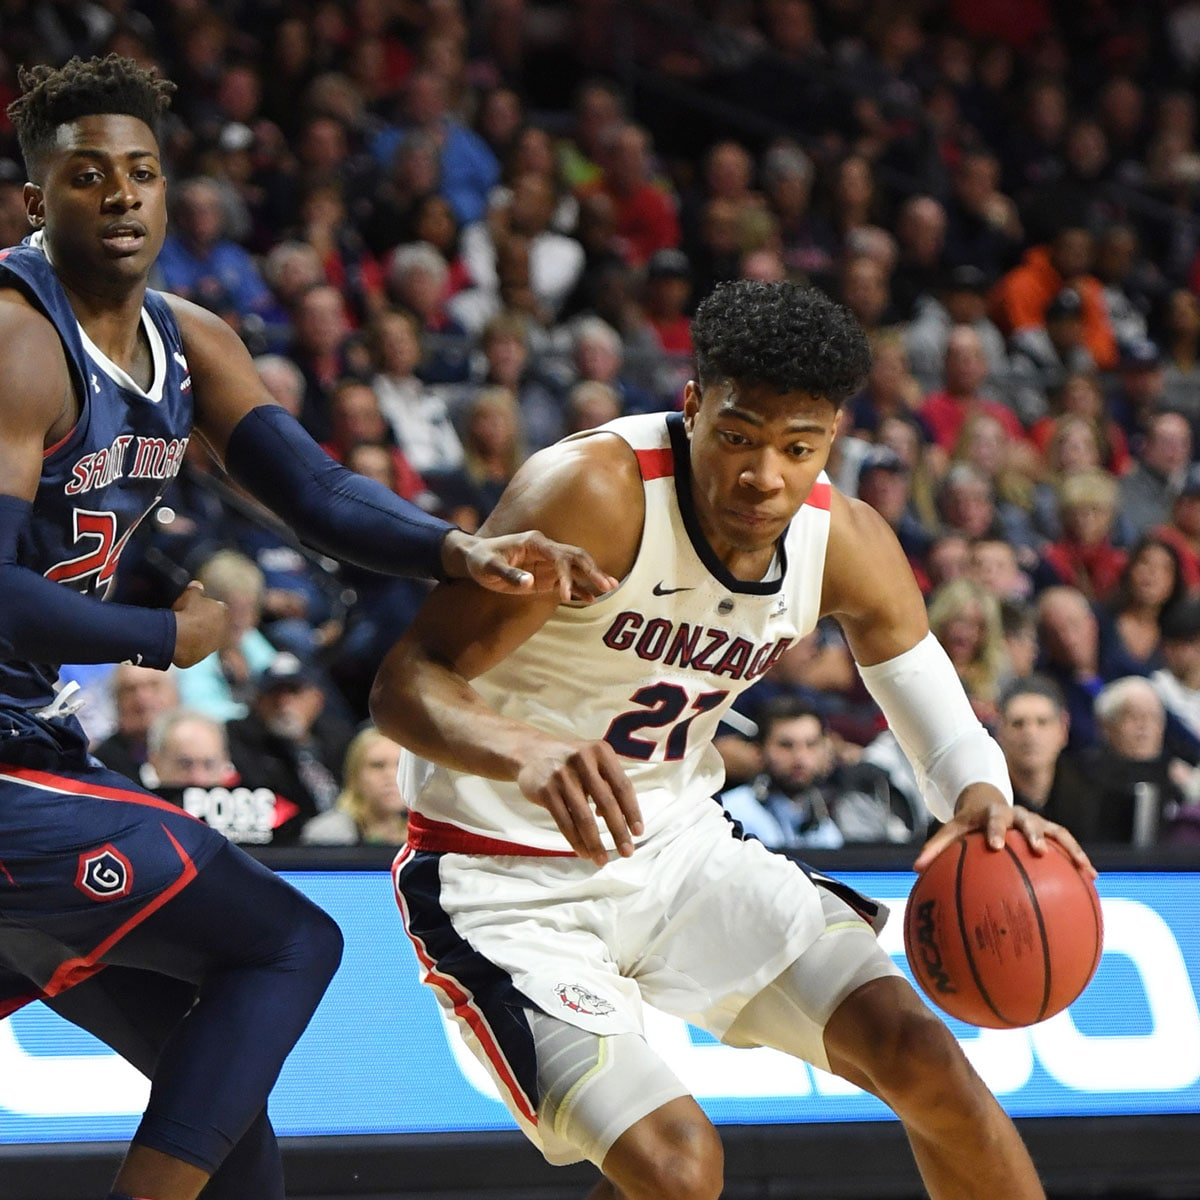 Rui Hachimura #21 of the Gonzaga Bulldogs drives against Malik Fitts #24 of the Saint Mary's Gaels during the championship game of the West Coast Conference basketball tournament at the Orleans Arena on March 12, 2019 in Las Vegas, Nevada. The Gaels defeated the Bulldogs 60-47.